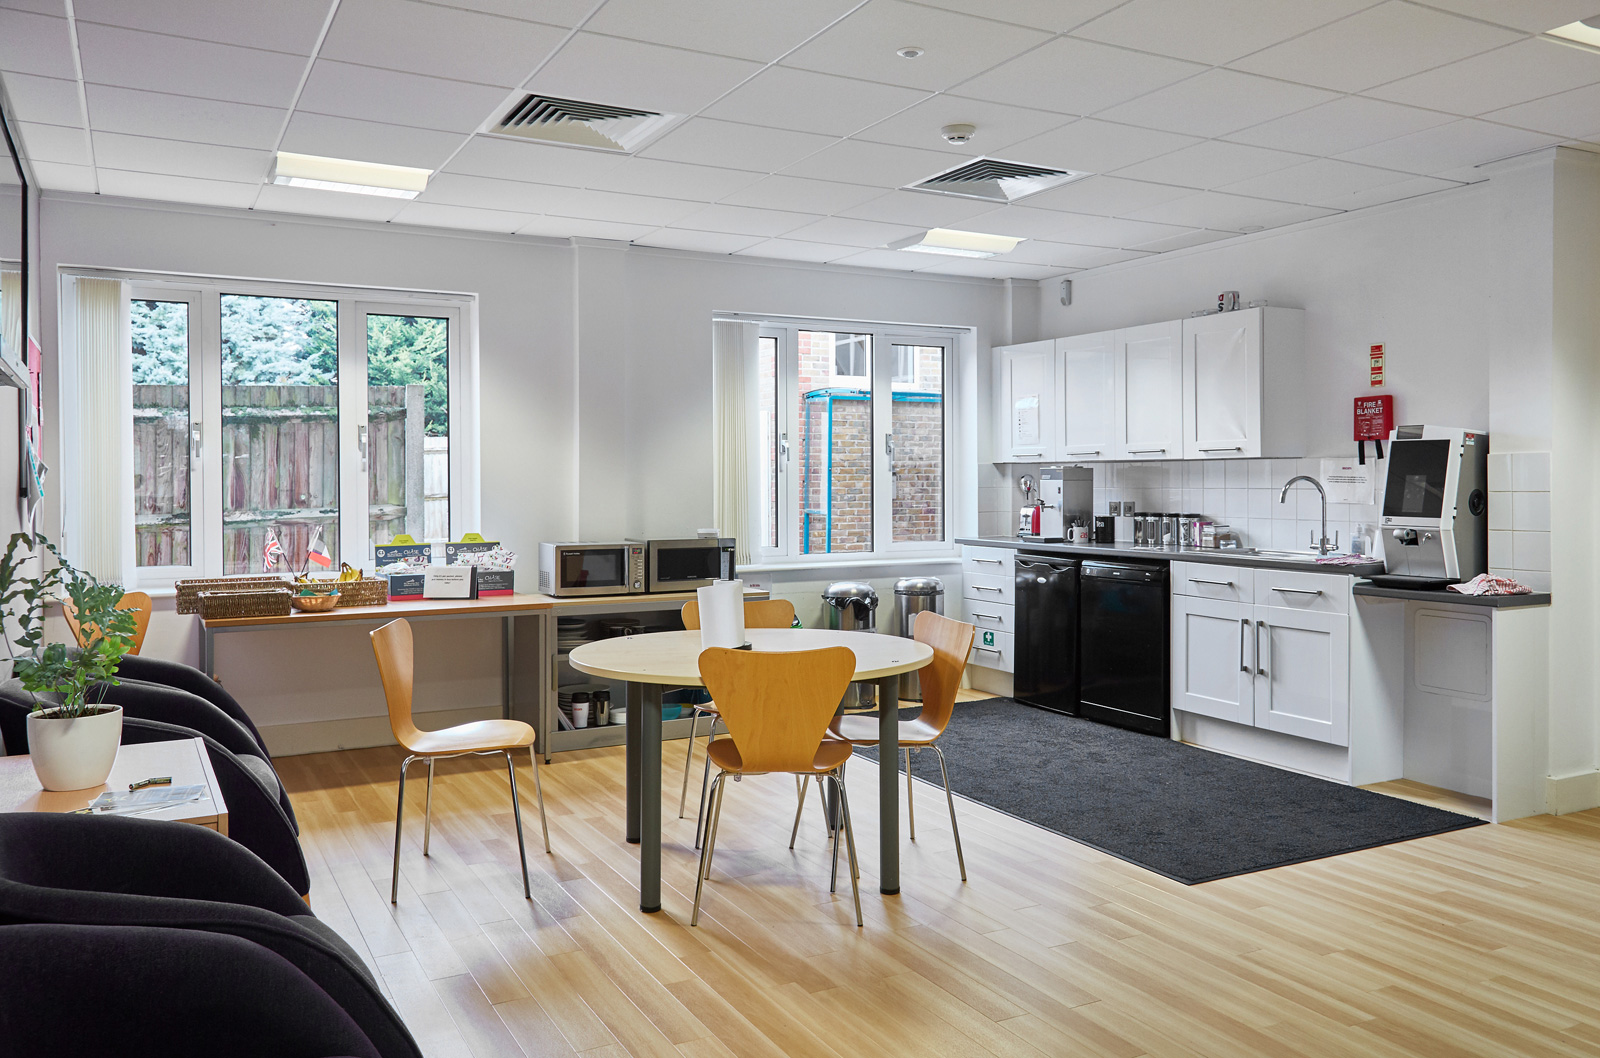 Office Kitchen at Tanshire Park